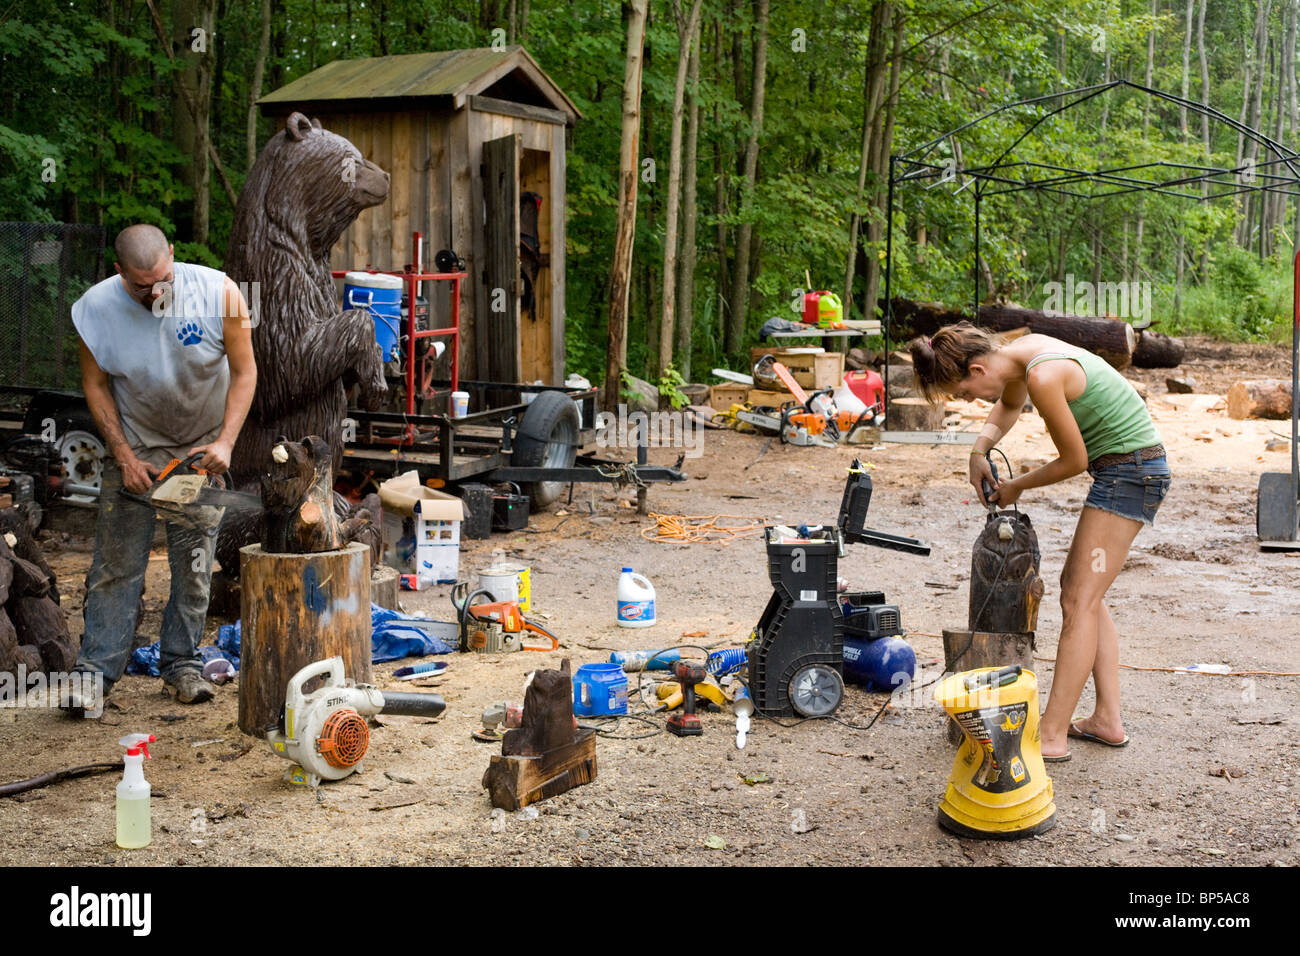 Man and woman make carved bears to sell by Oneida Lake, central New York State - Stock Image